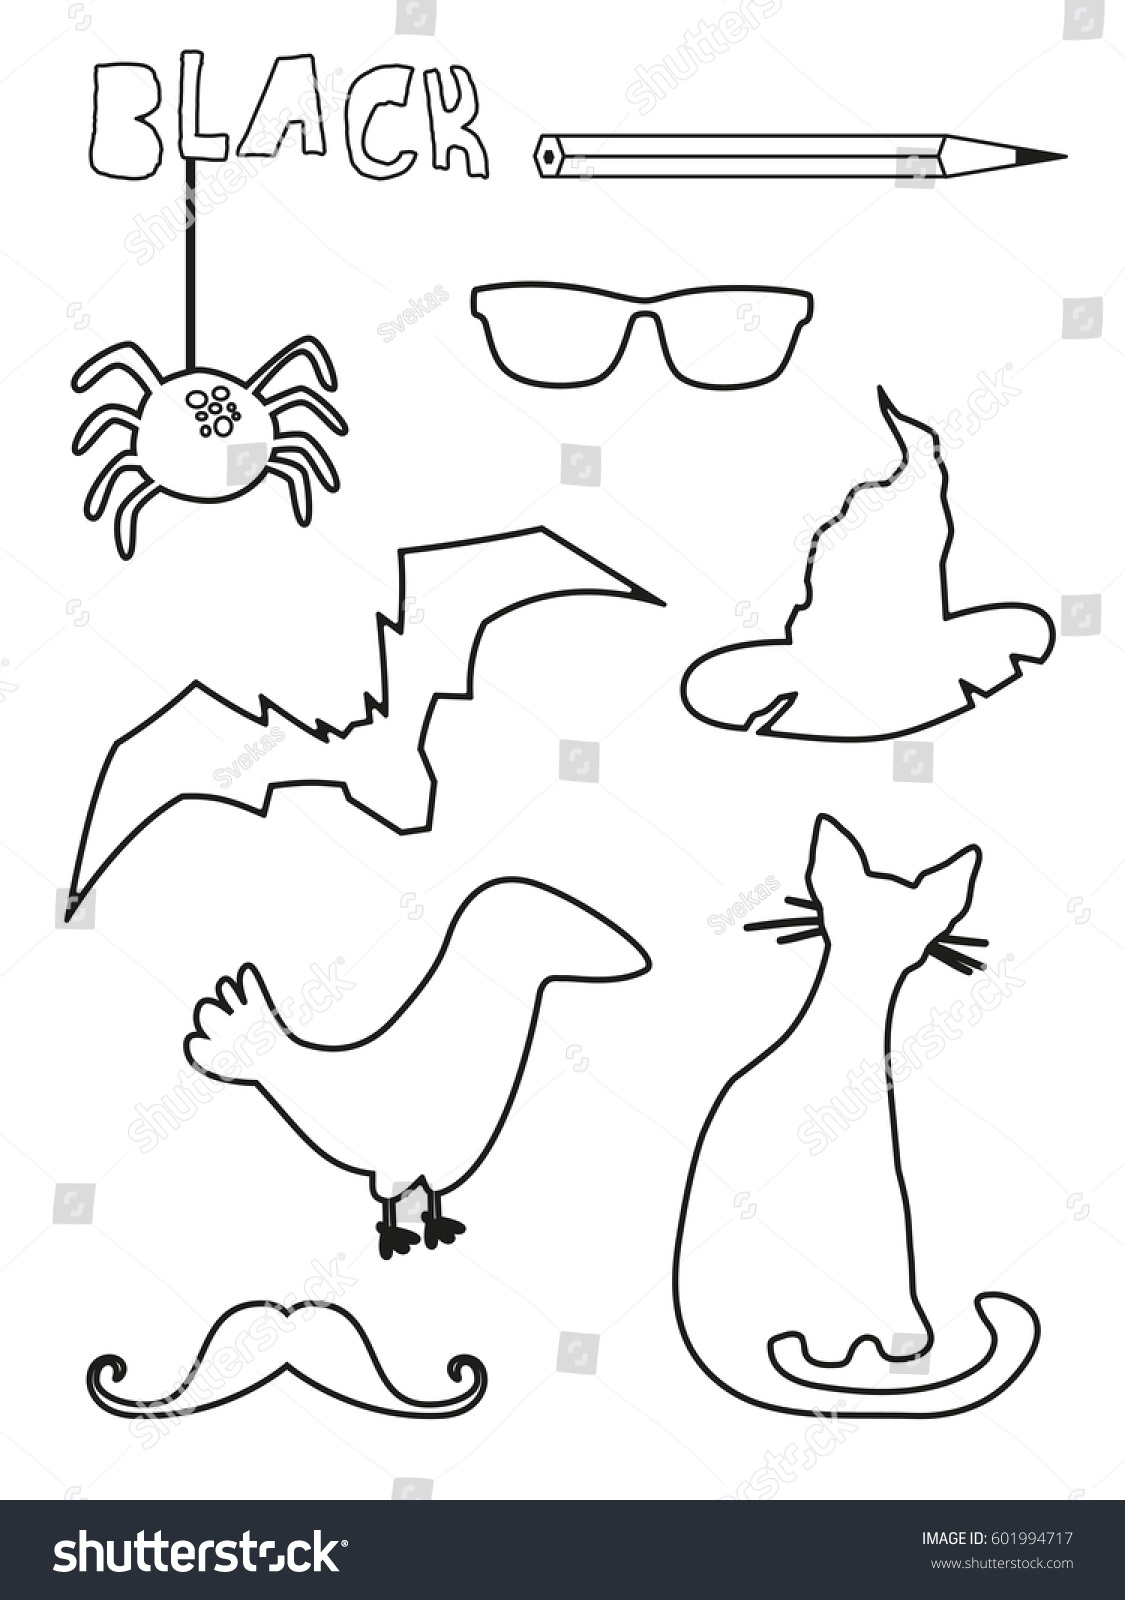 worksheet Spider Worksheets coloring page black things set single stock vector hd royalty free color worksheets spider bat glasses